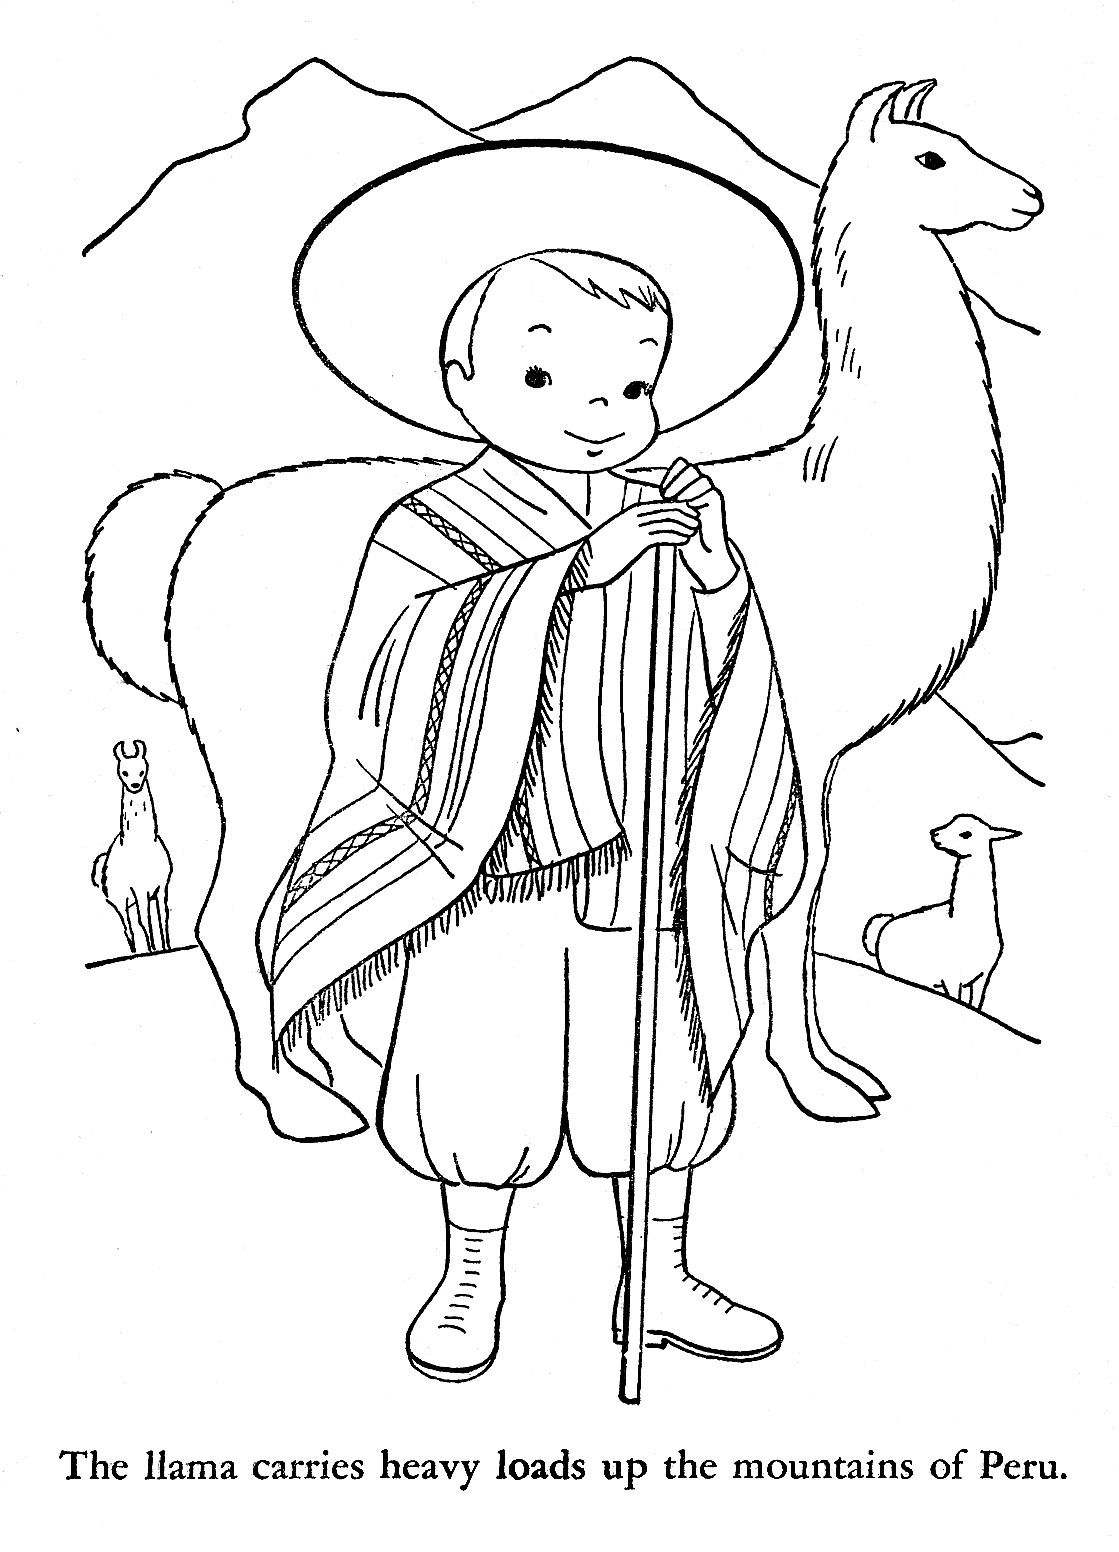 peru 2 jpg 1 119 1 552 pixels coloring pages pinterest peru